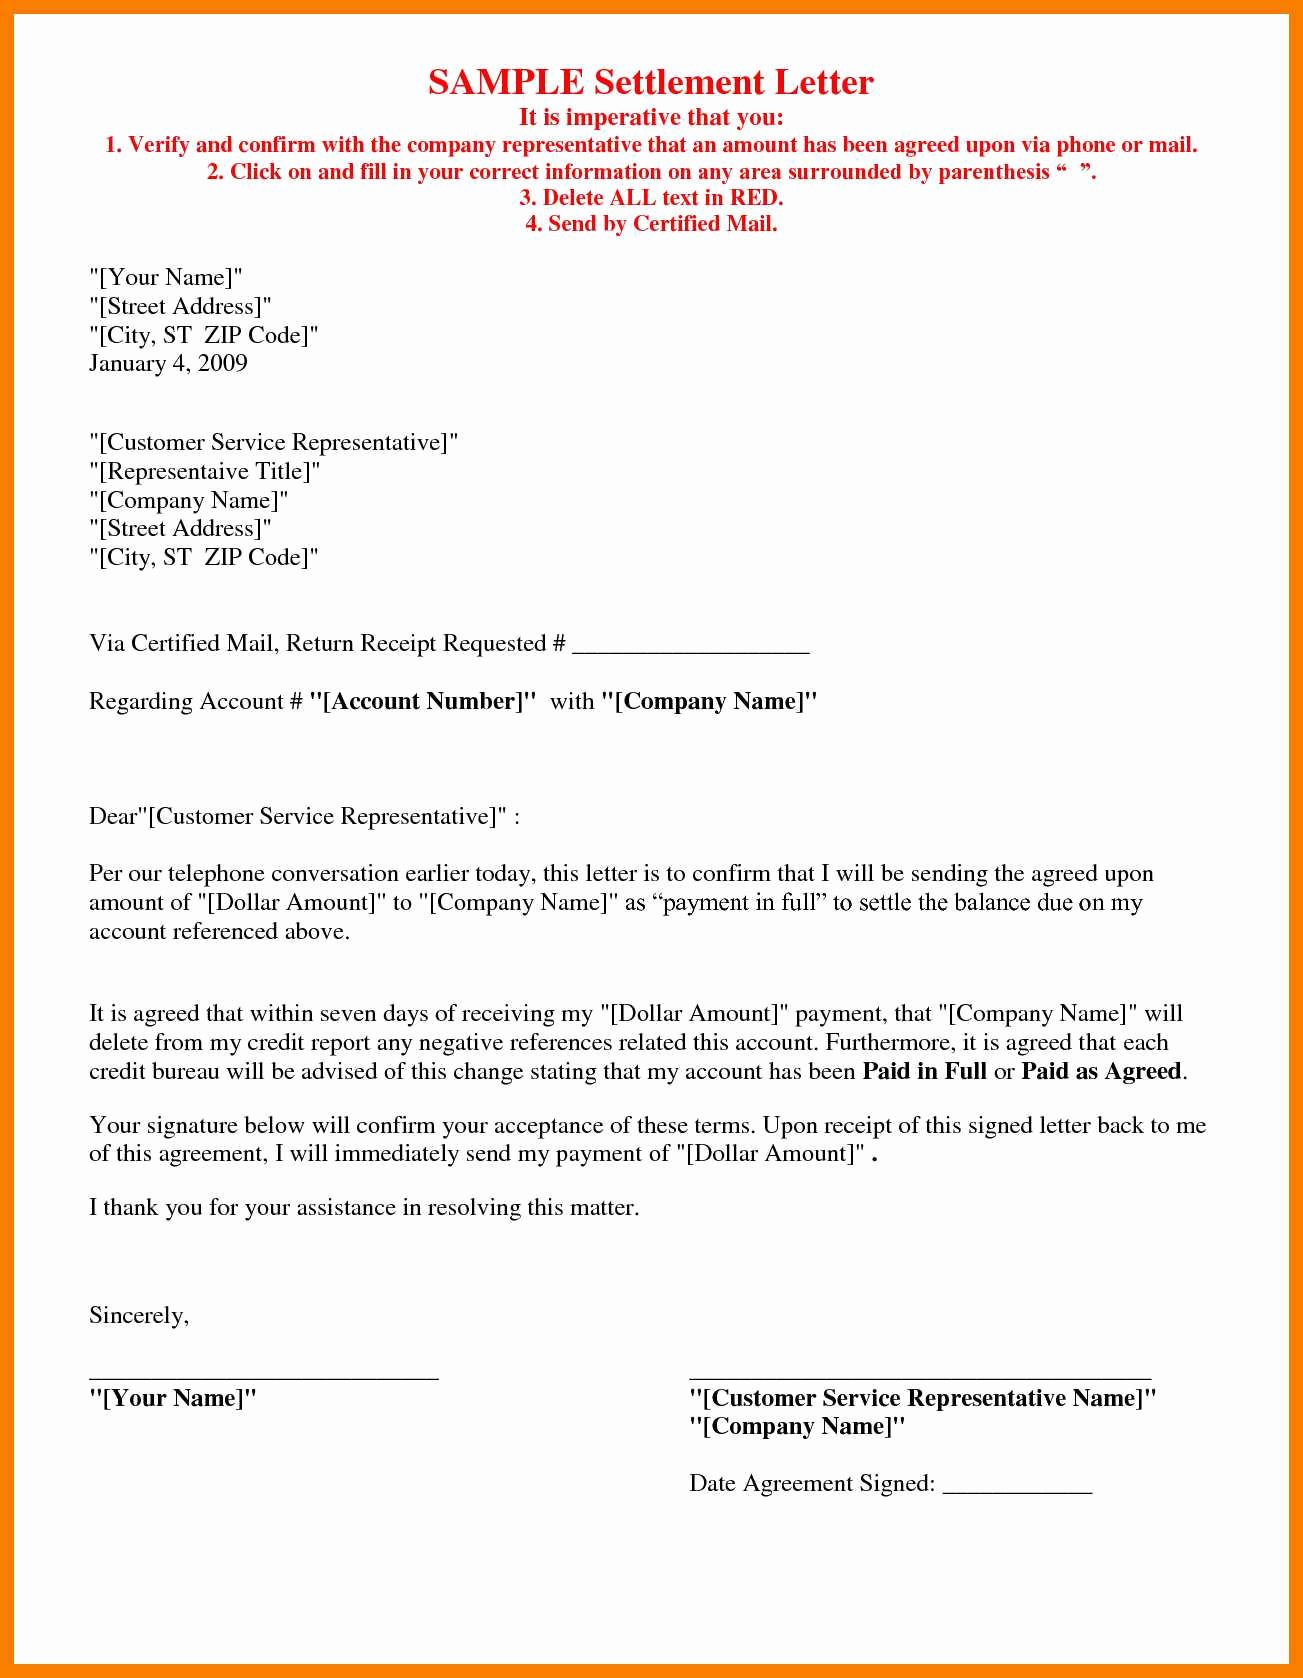 Full and Final Settlement Letter Template Car Accident - Sample Settlement Agreement Letter Beautiful Payment Agreement